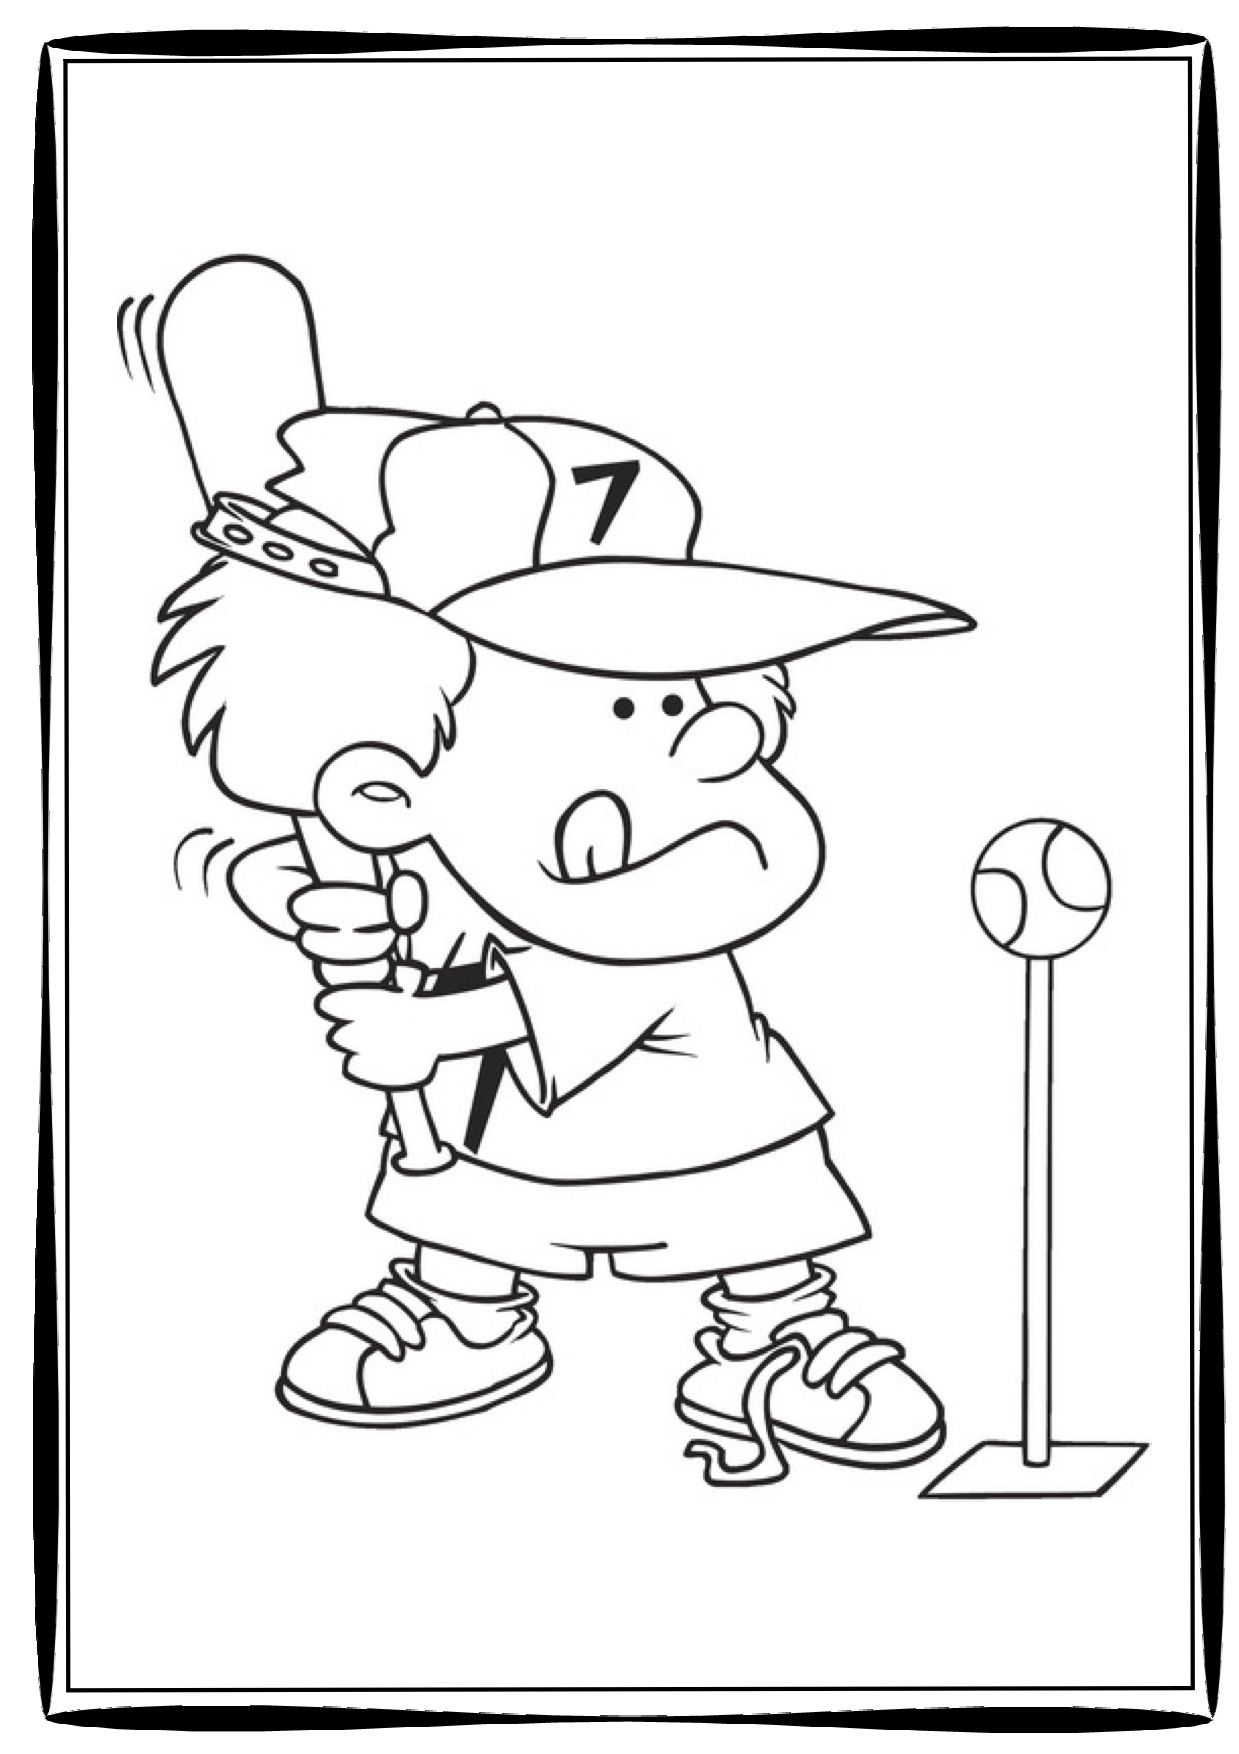 Babe Ruth Coloring Page